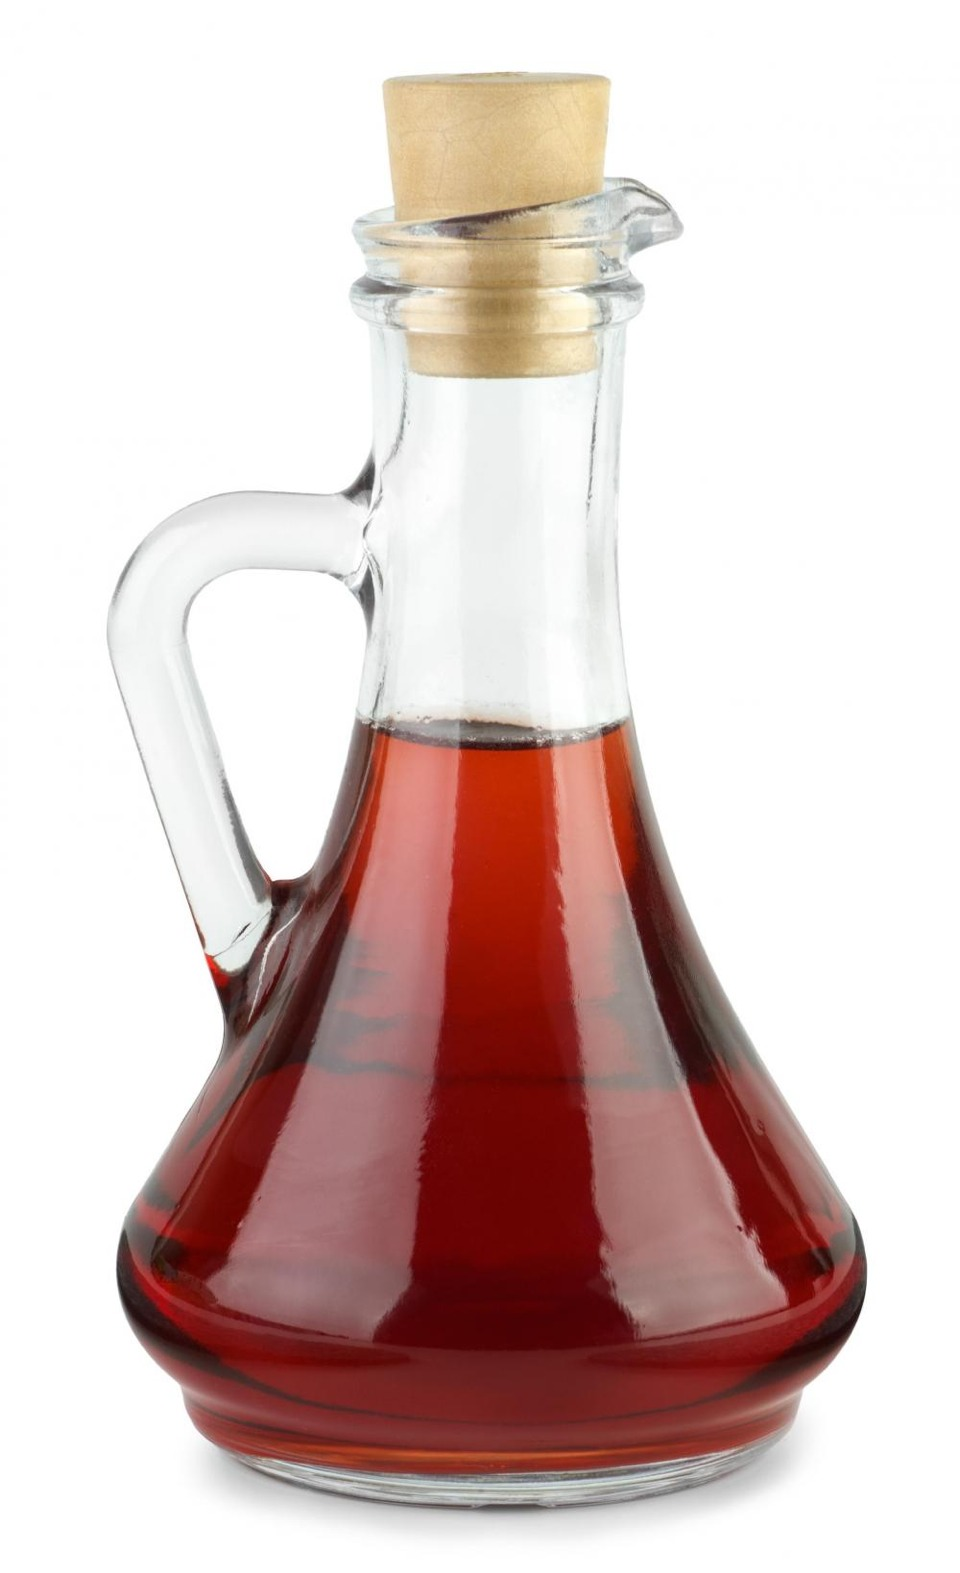 While using vinegar will up the ante in shine, do the same with the vinegar as you would the beer. However do not use together!